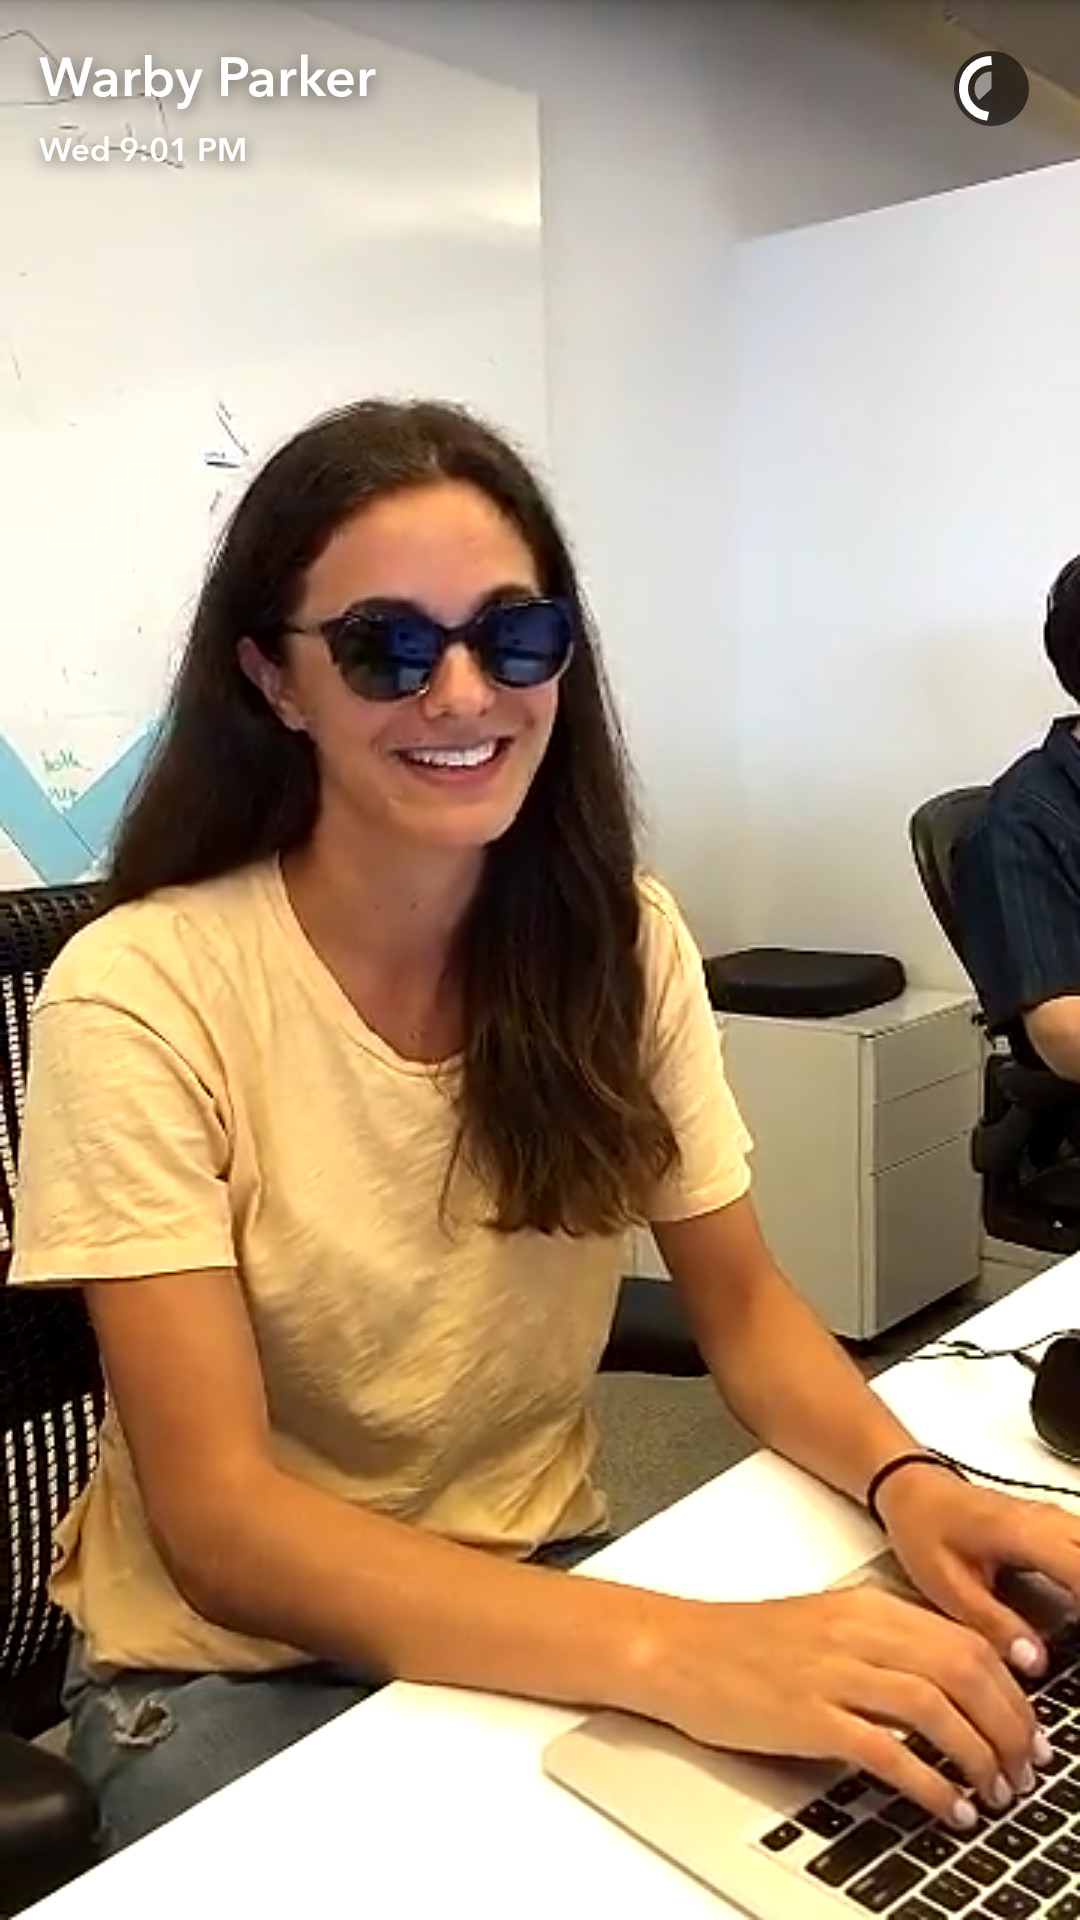 Allison Parker Snap Chat Videos check out warby parker's snapchat username and find other